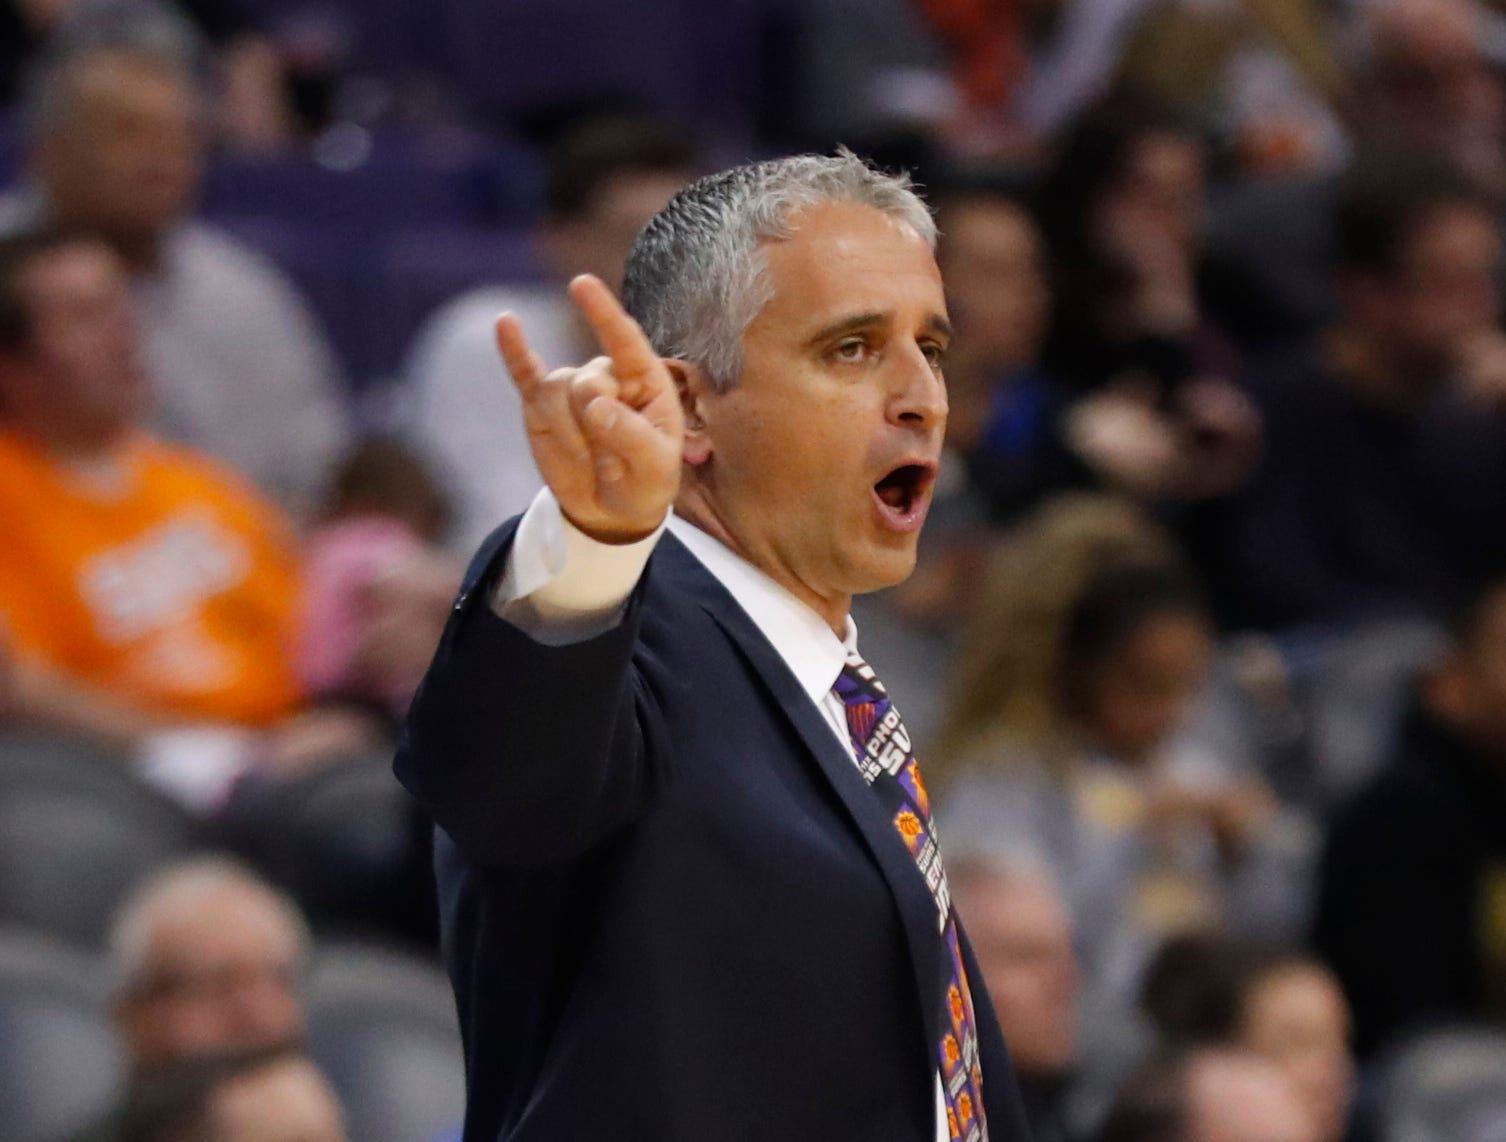 Suns head coach Igor Kokoskov yells to his team against the Magic during the first half at Talking Stick Resort Arena in Phoenix, Ariz. on November 30, 2018.